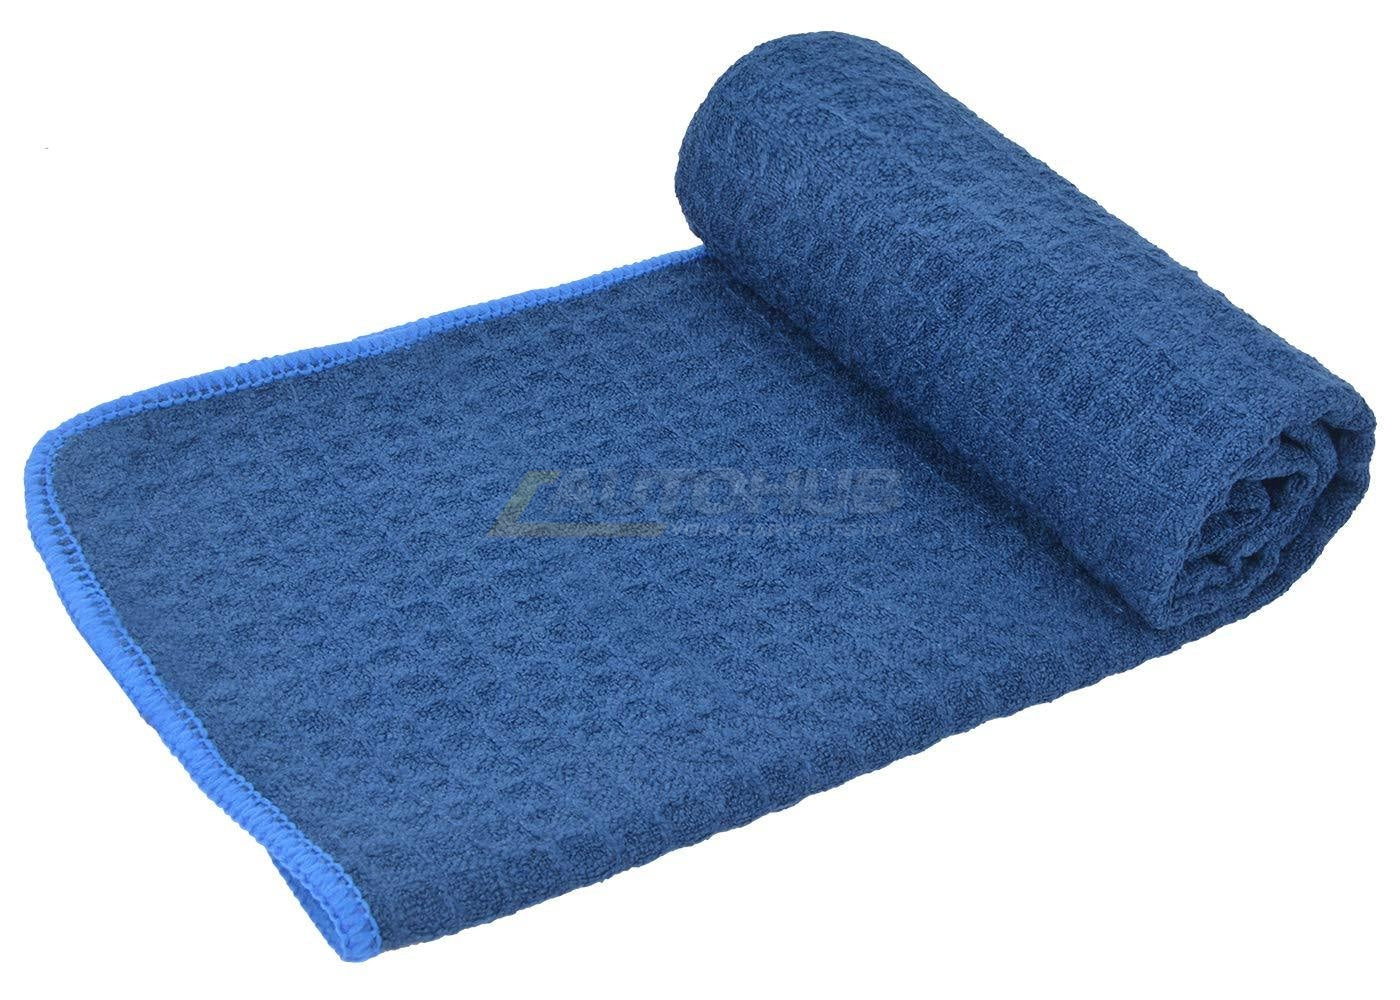 Kenco Premium Streak Free Drying Towel 53x76 cm